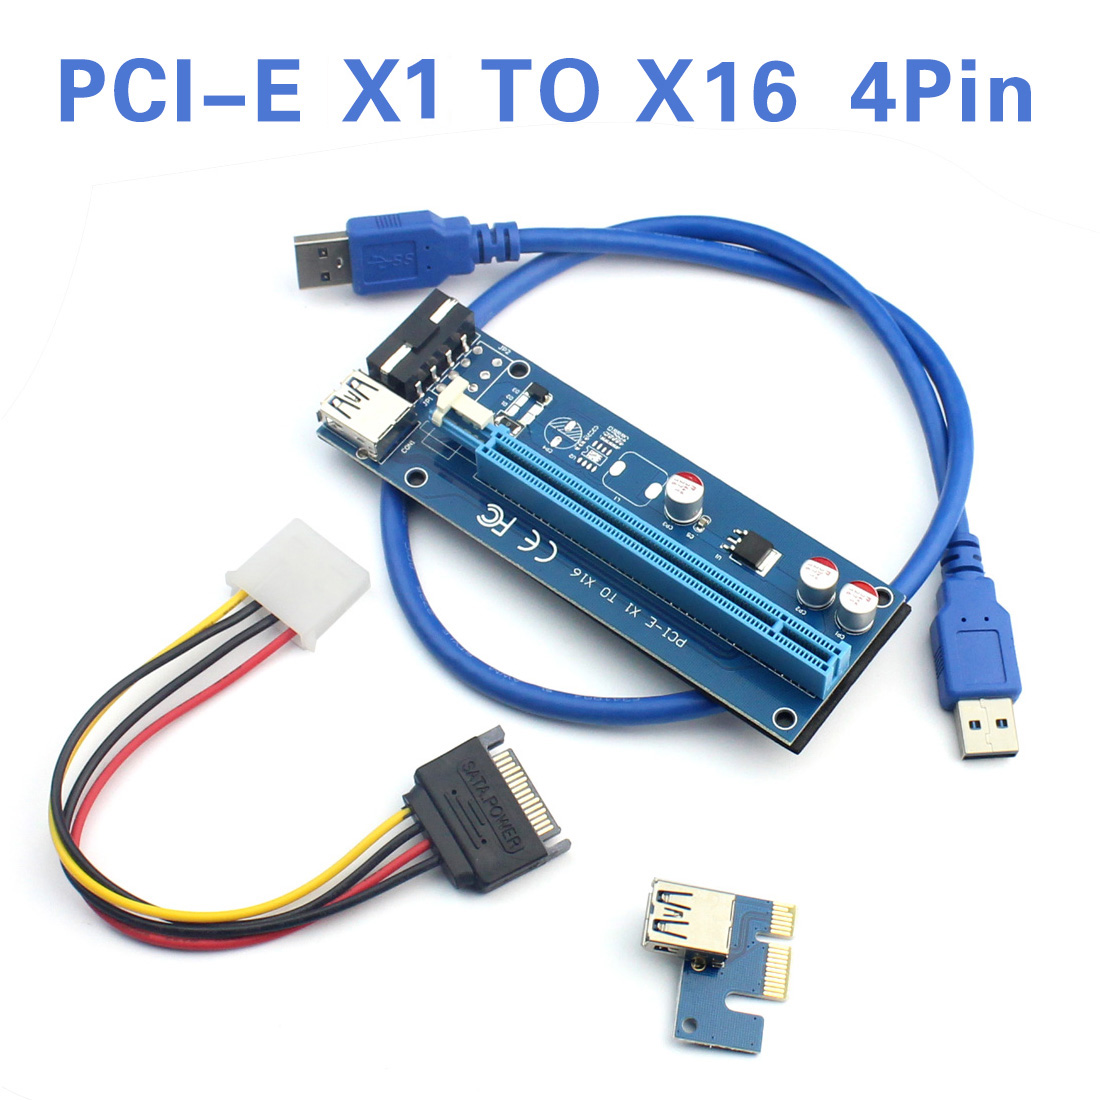 US$ 3.3 - WBTUO PCI-E 1X to 16X extension cable 4Pin PCIE USB3.0 ...